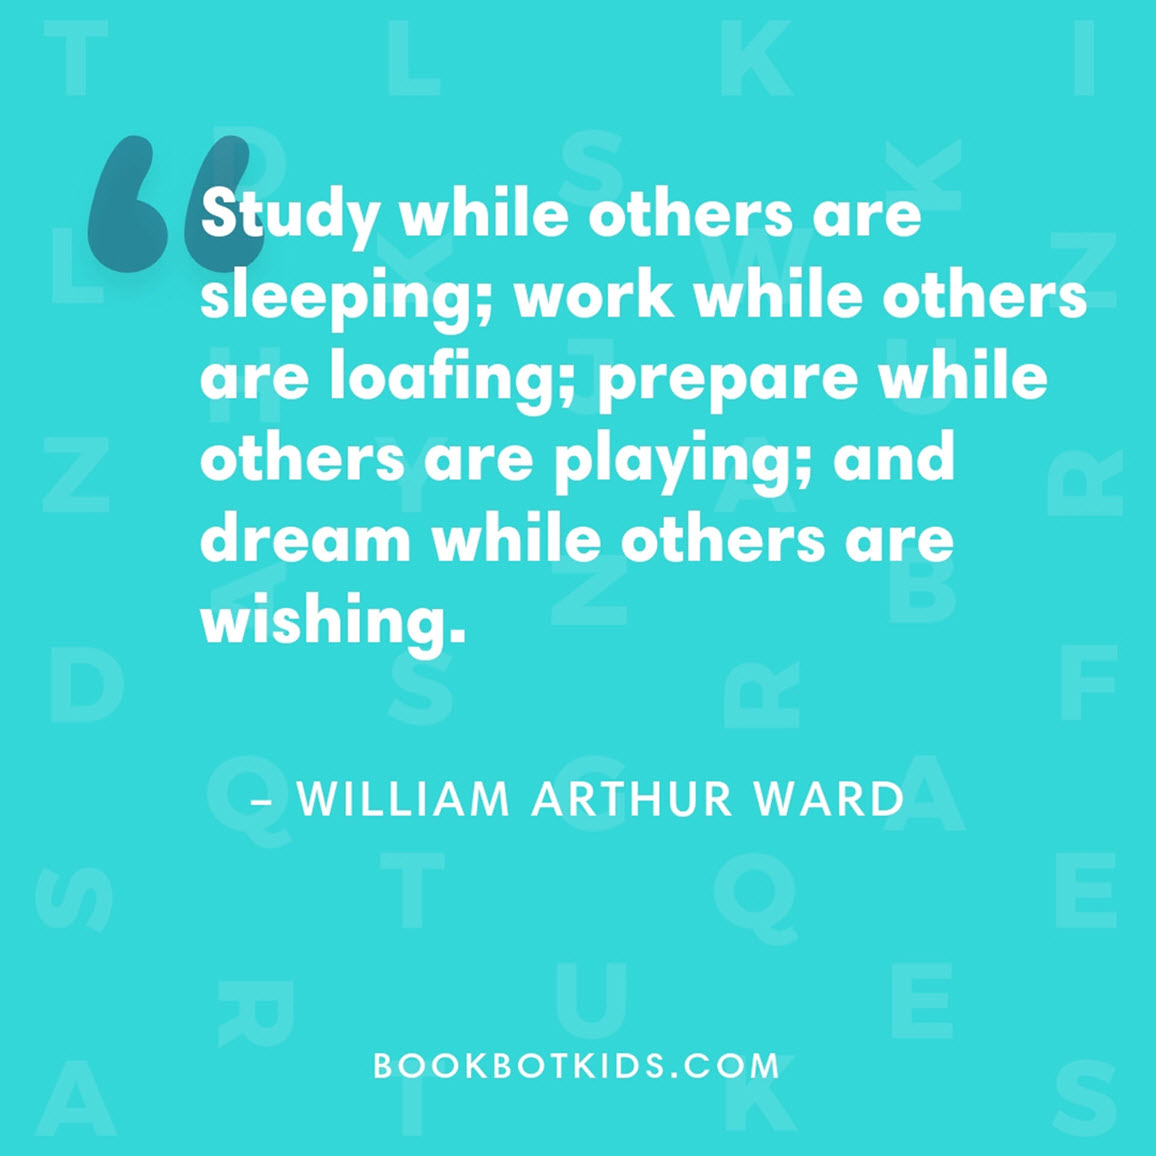 Study while others are sleeping; work while others are loafing; prepare while others are playing; and dream while others are wishing. – William Arthur Ward